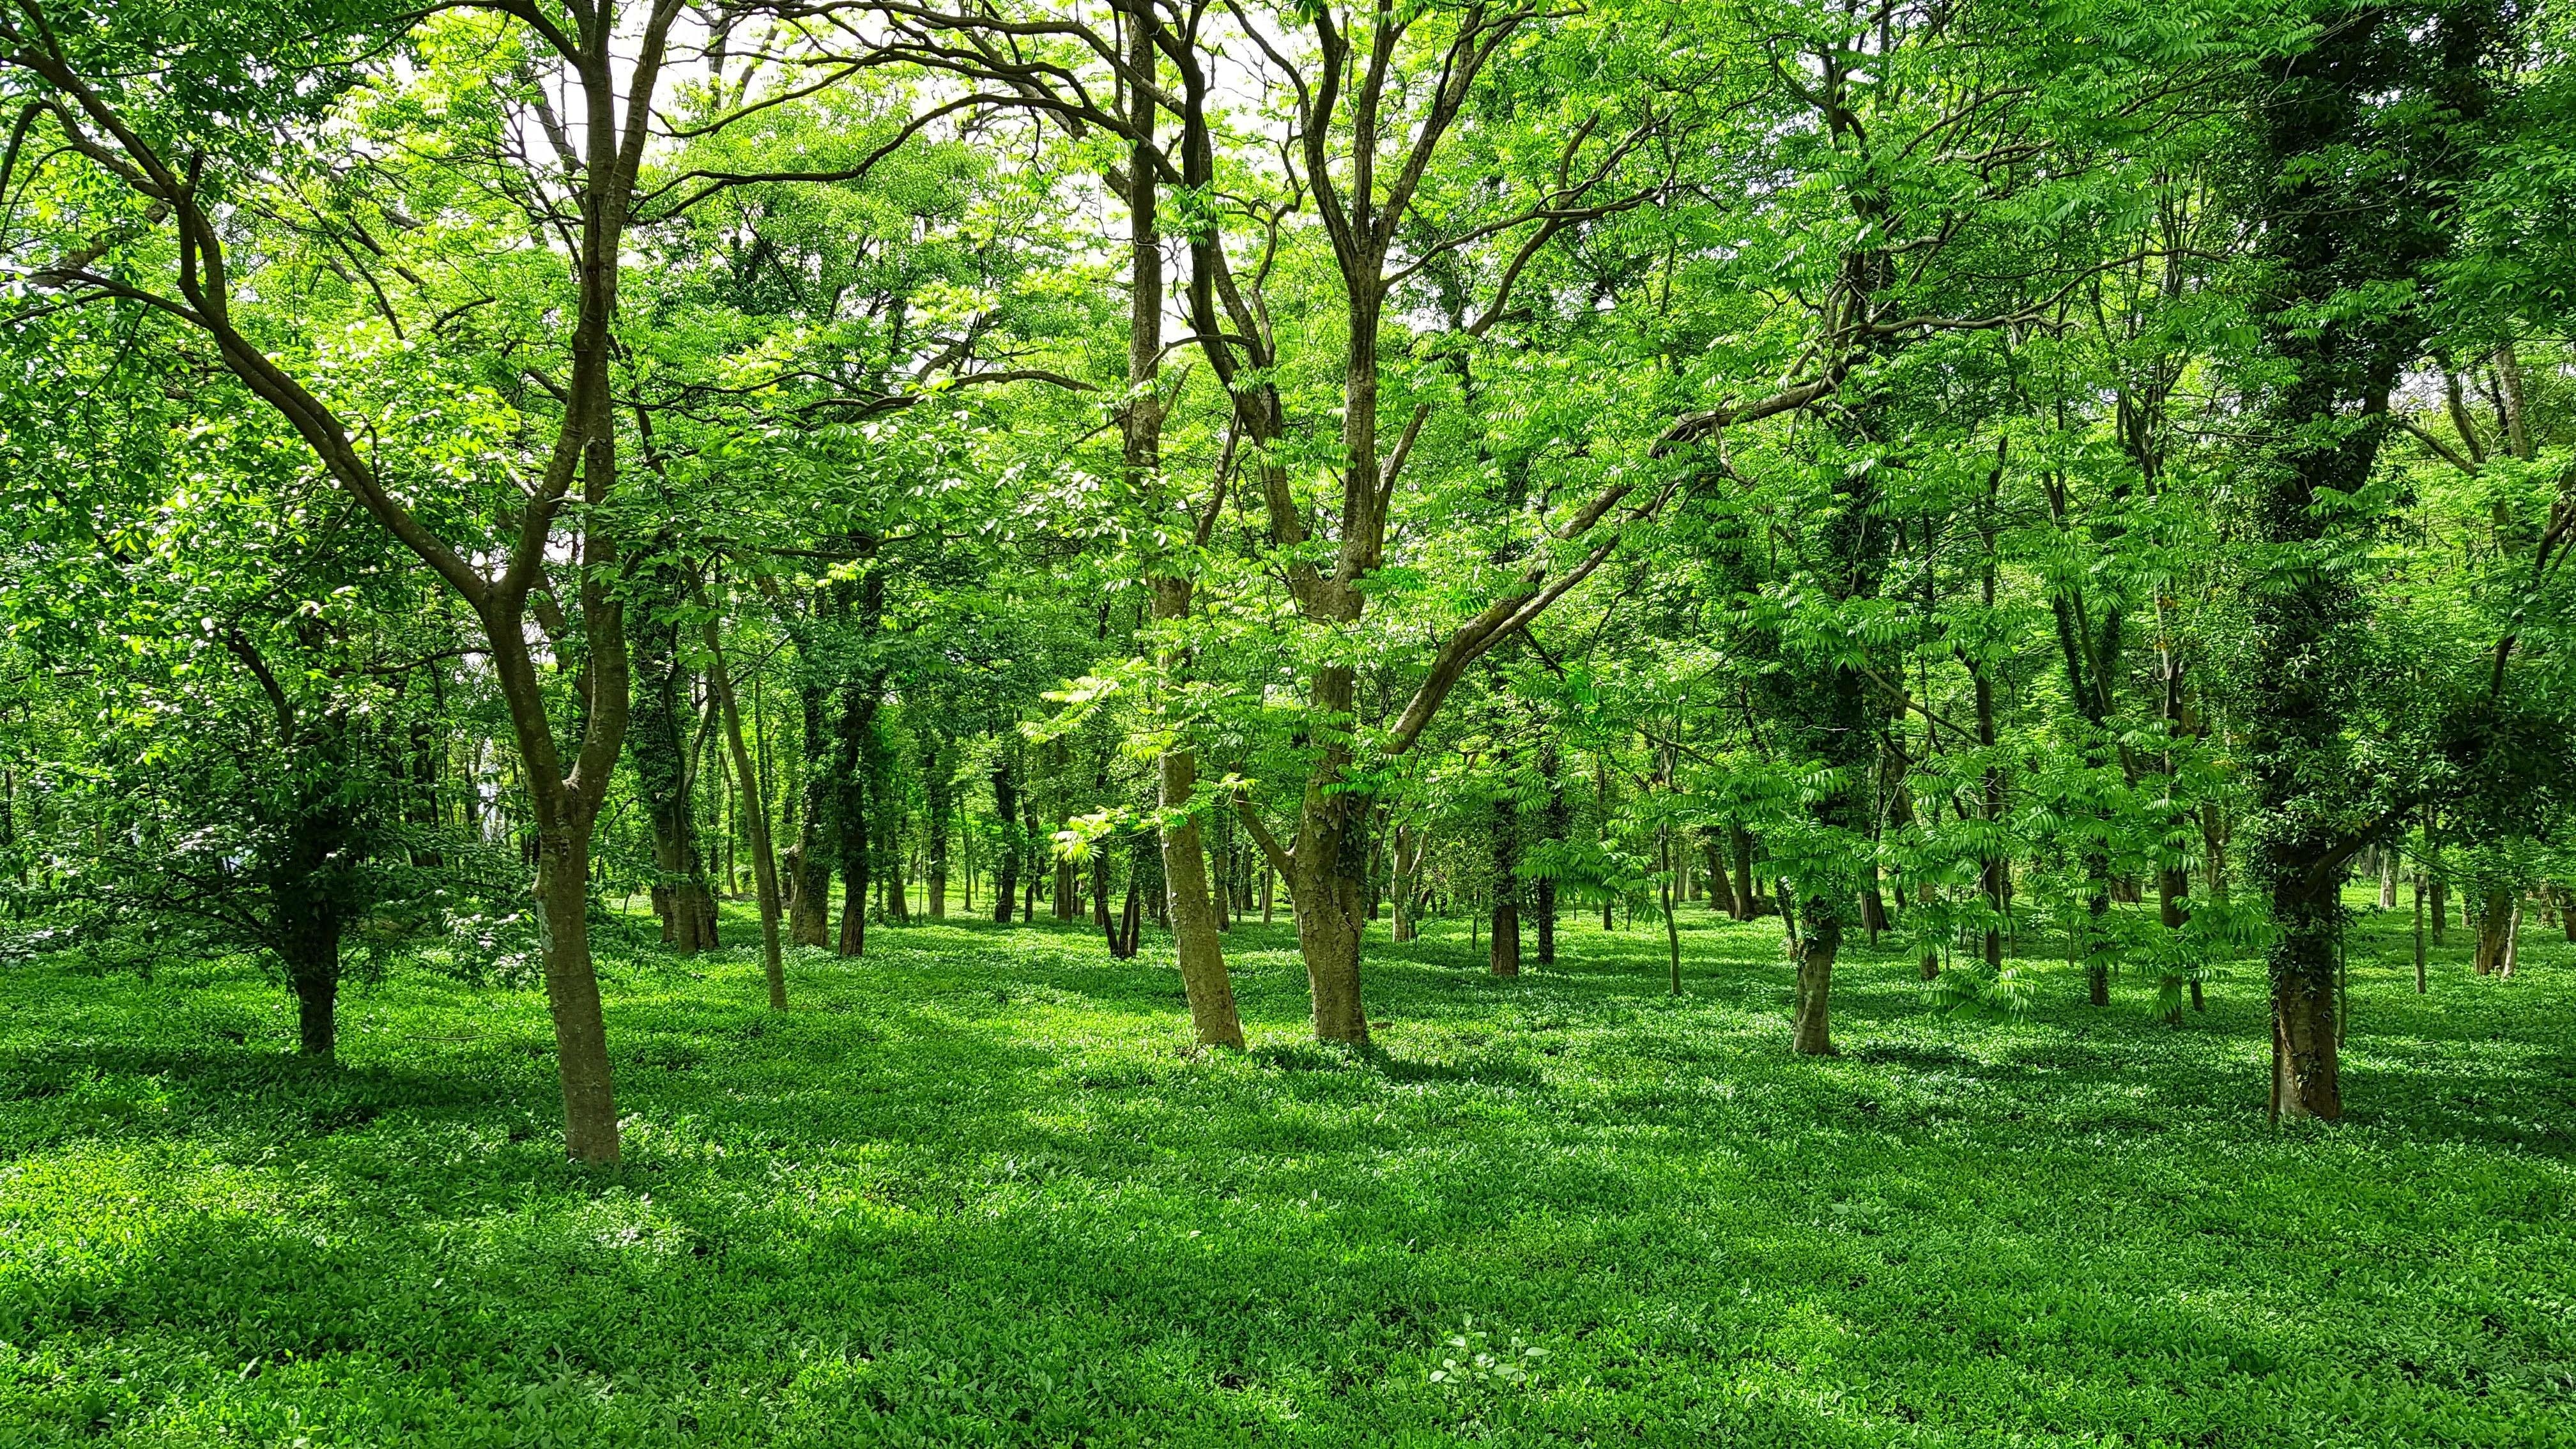 trees like these ones can be financed and supported by green bonds